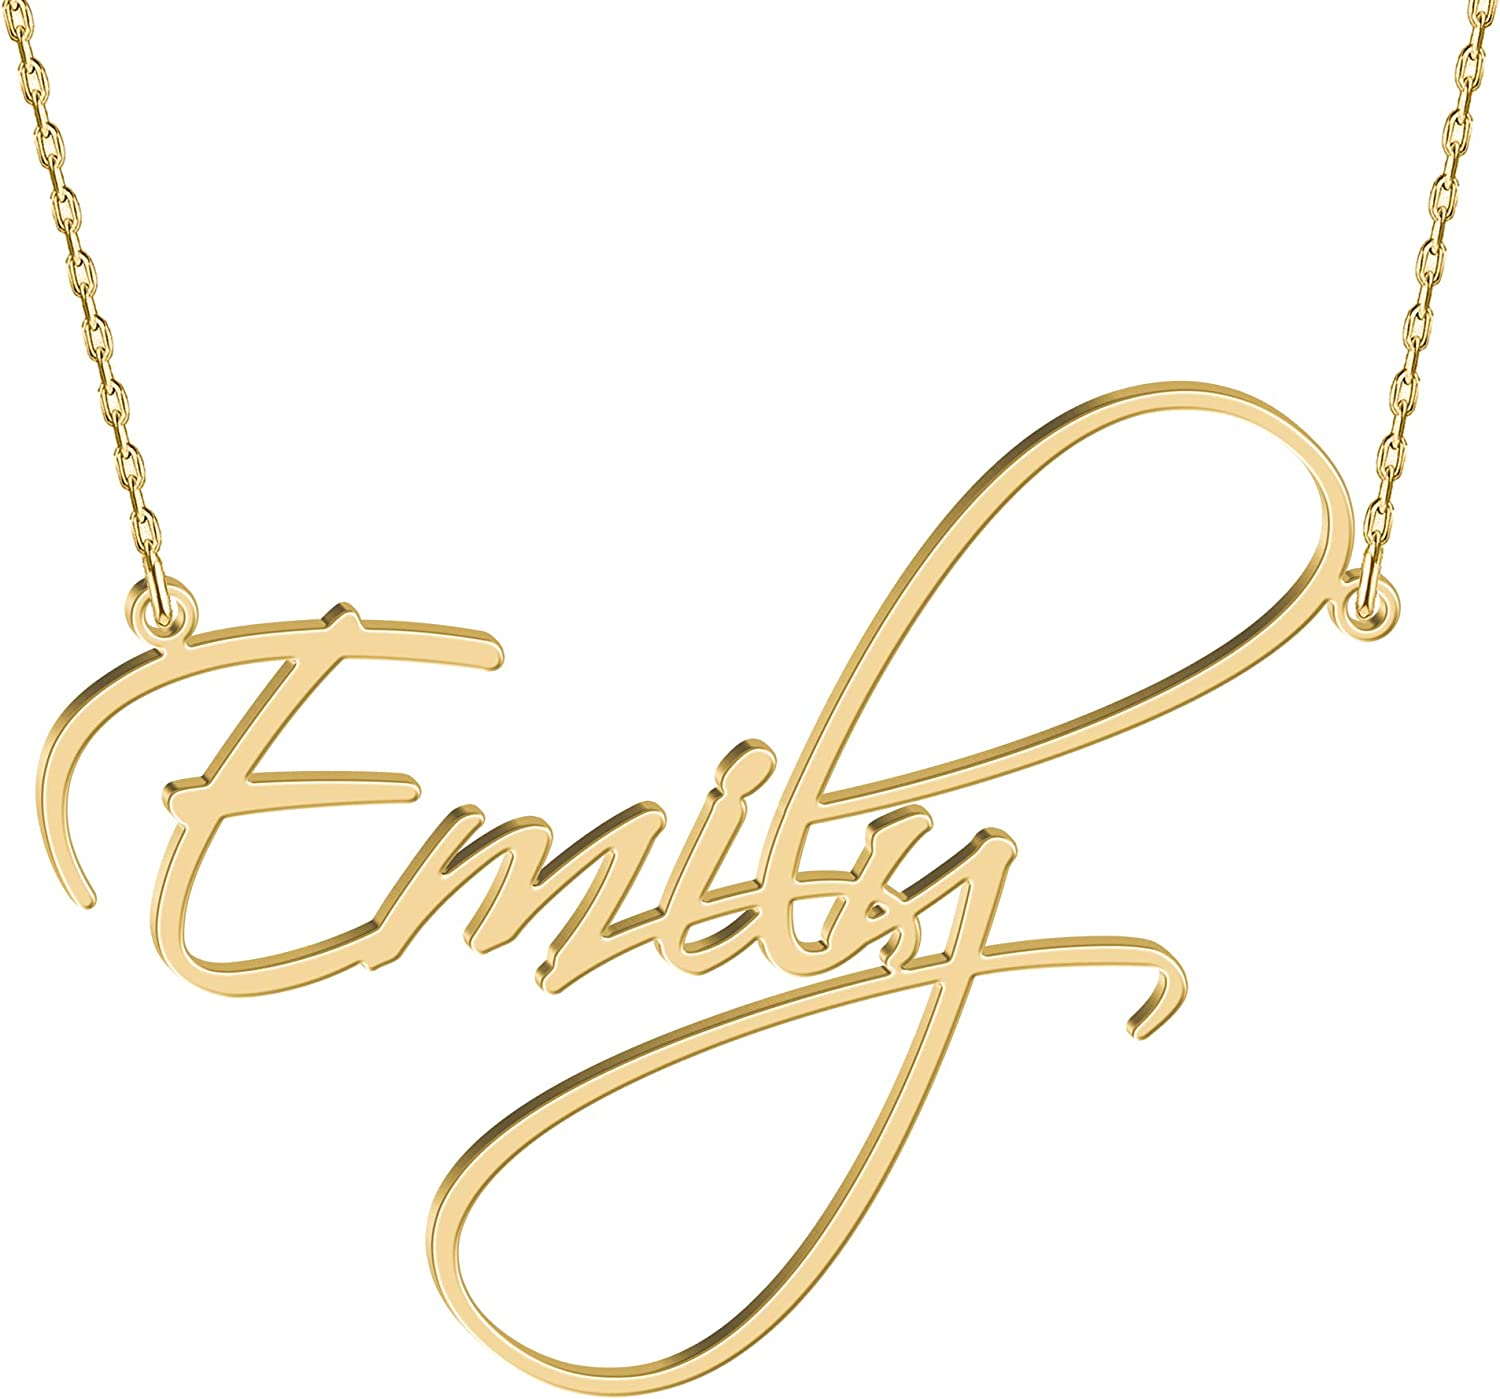 Anniversary Custom Made Crystals Birthday Christmas Gifts For Her GABRIELA Name Necklace /& Name Bracelet Jewellery Set 18K Gold Plated